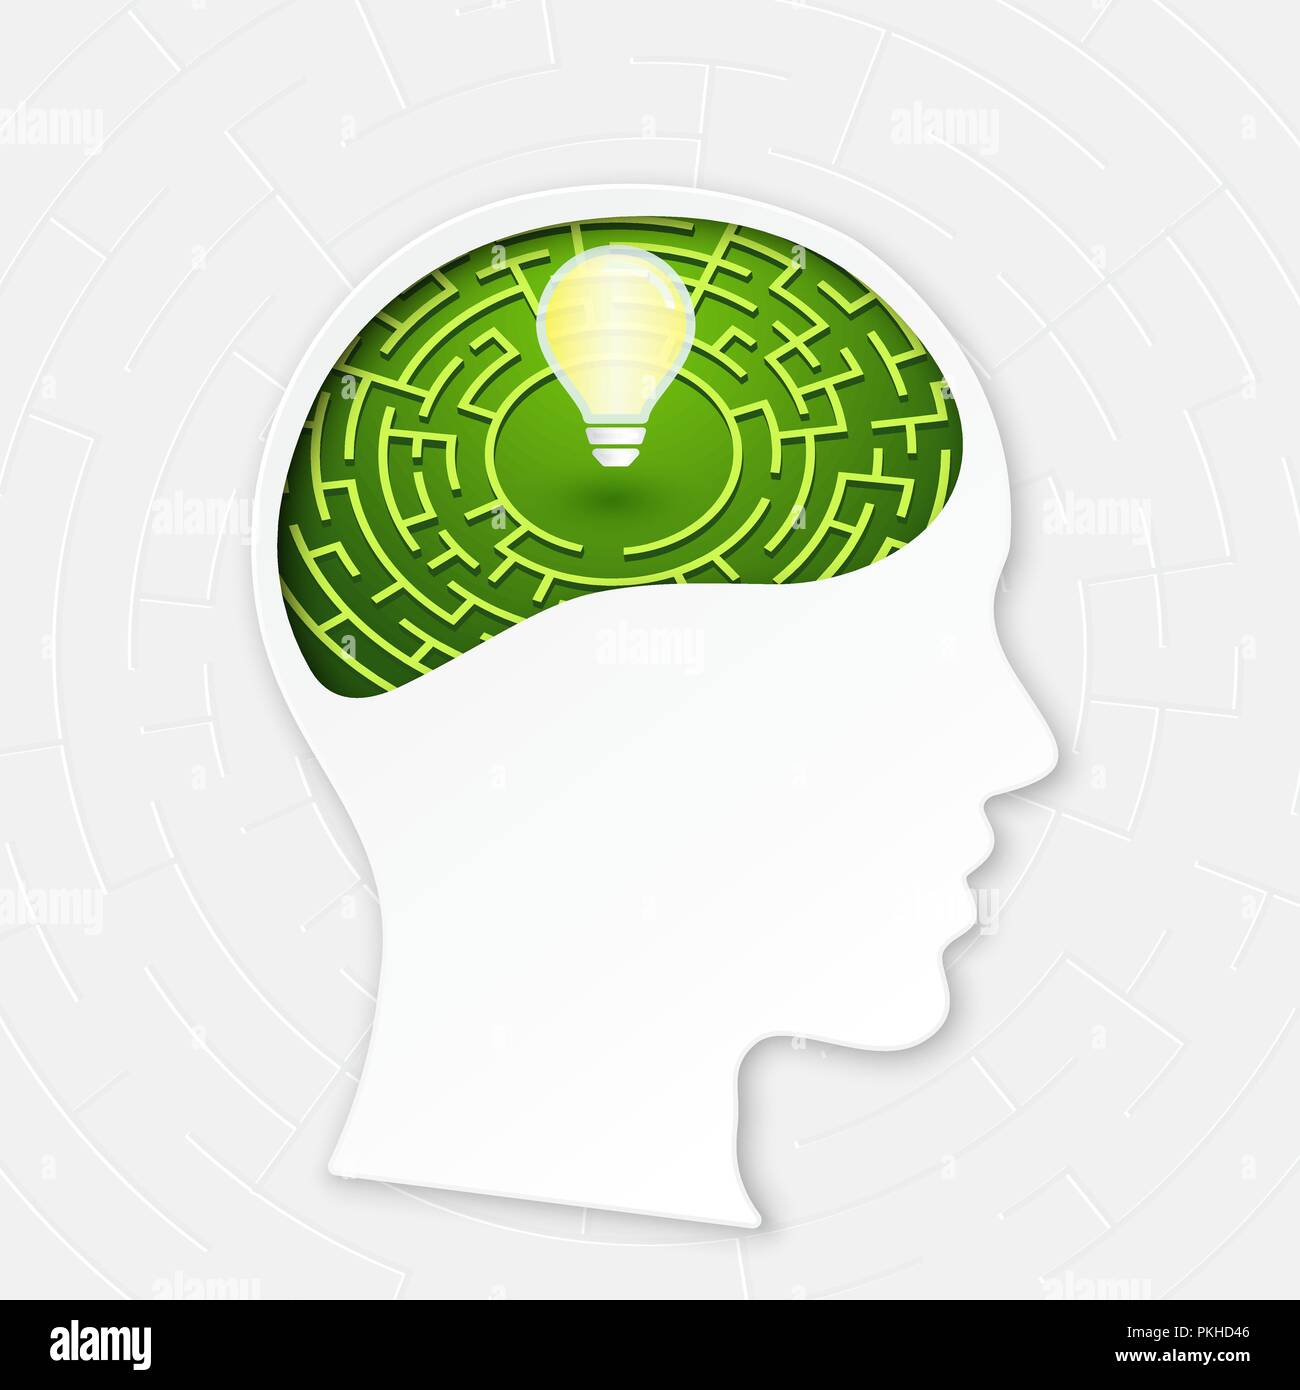 Head with  maze line brain, mind labyrinth, mental work. Vector illustration concept for  strategic thinking, problem solving, creativity, business, s - Stock Image